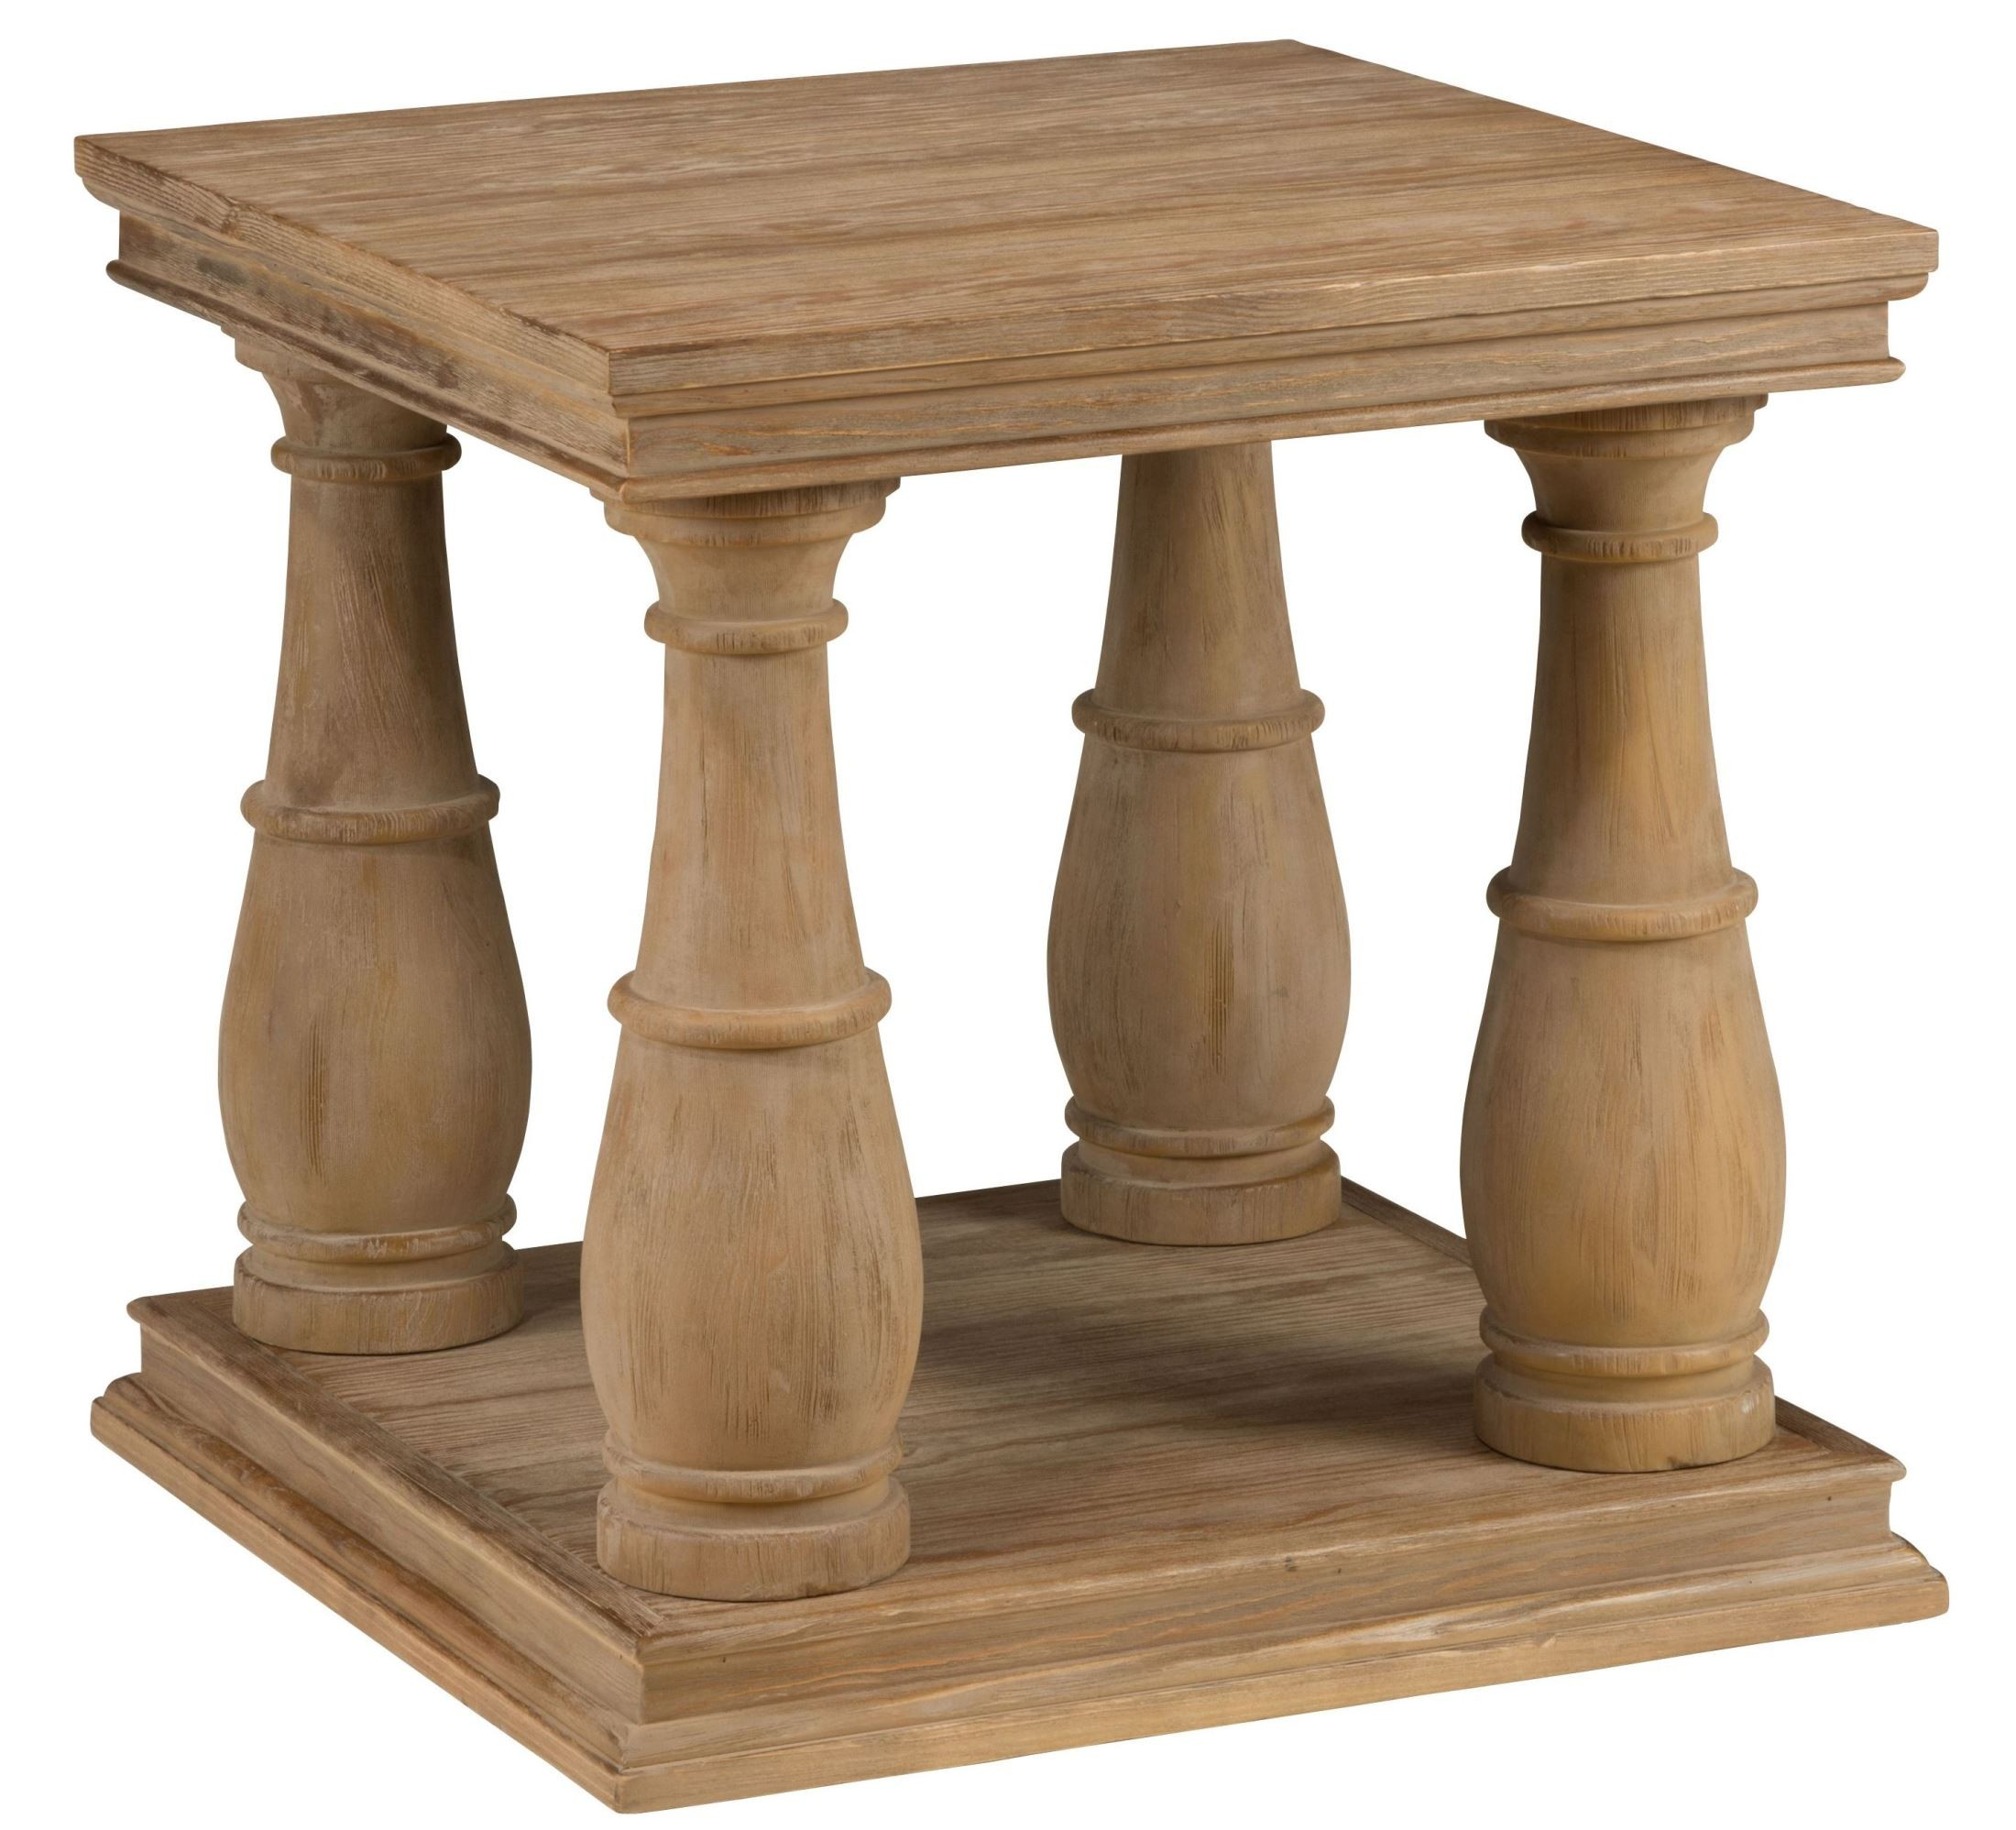 Driftwood End Table: Big Sur Driftwood Brown End Table From Jofran